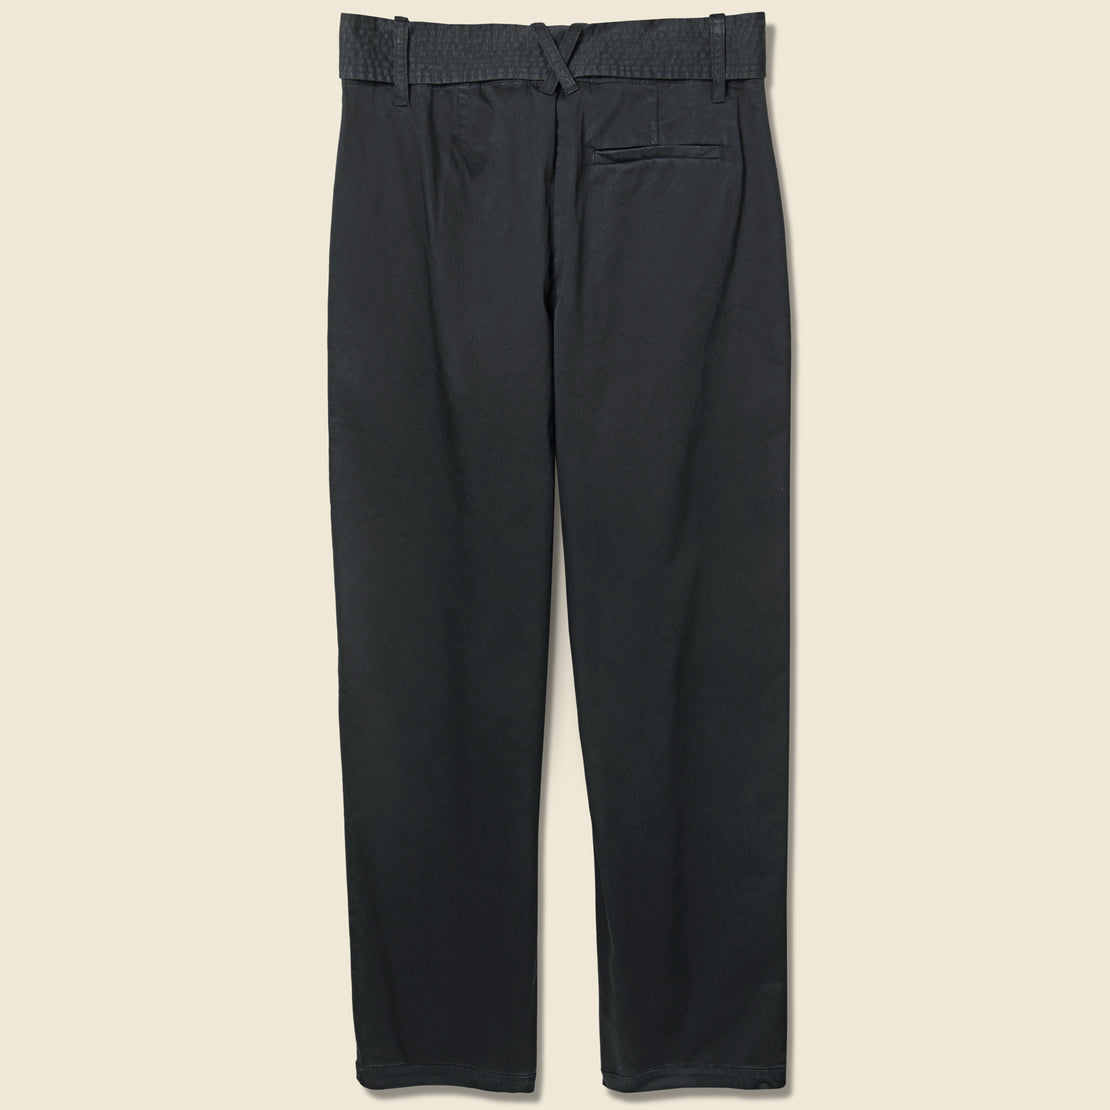 Avery Pleated Pant - Black